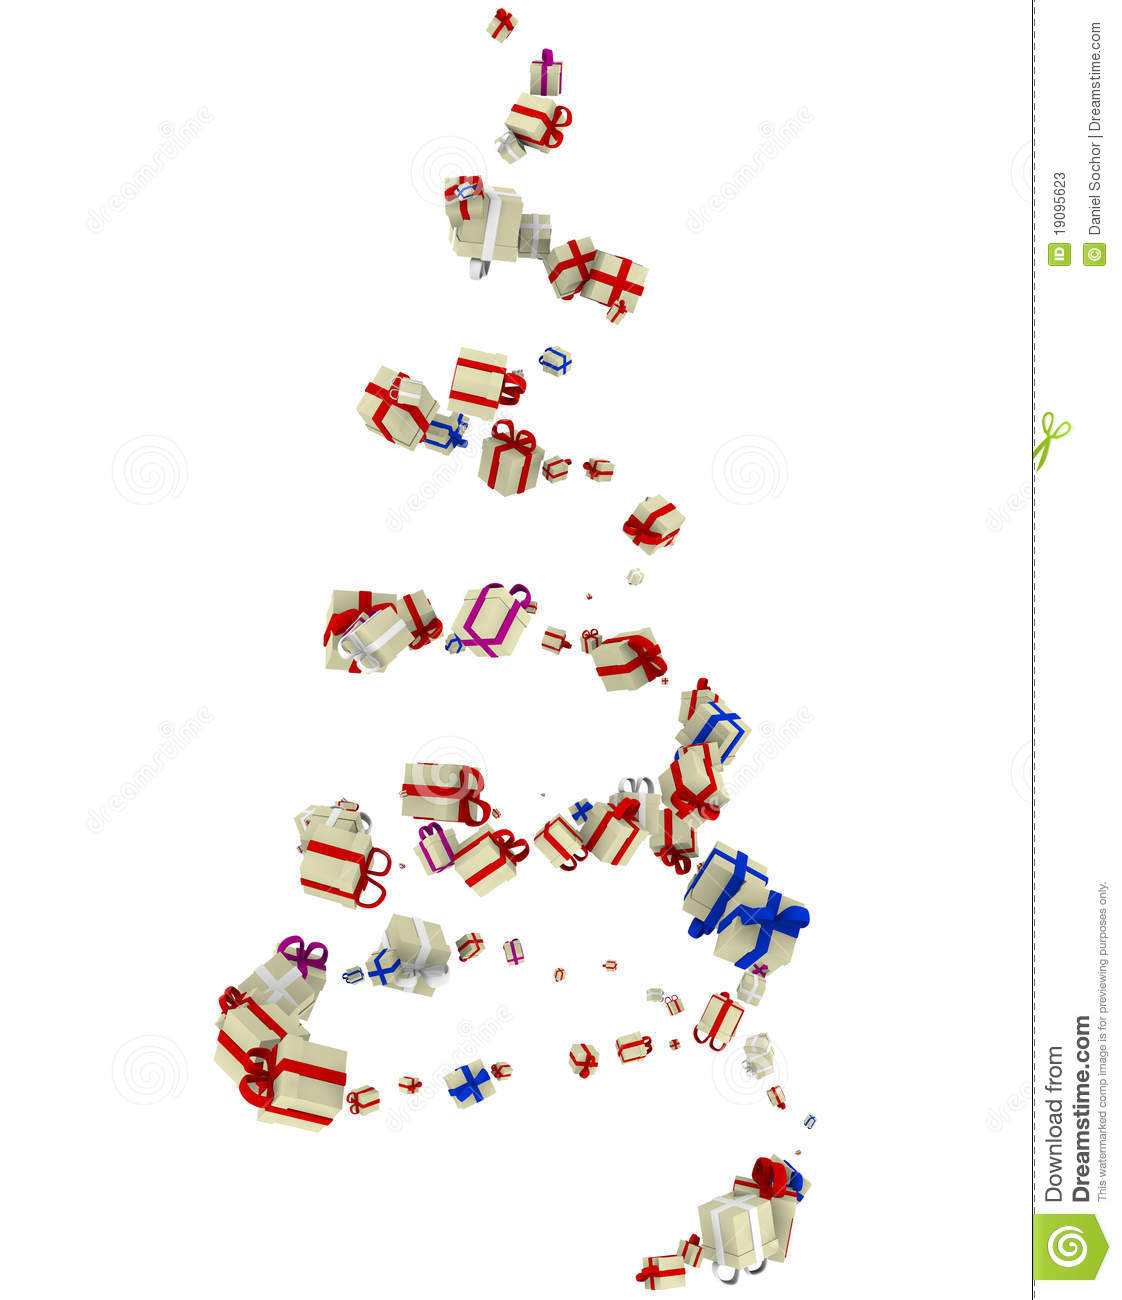 Motive Weihnachten Gratis Schwarz Weiß Christmas Motive Stock Photos Image 19095623